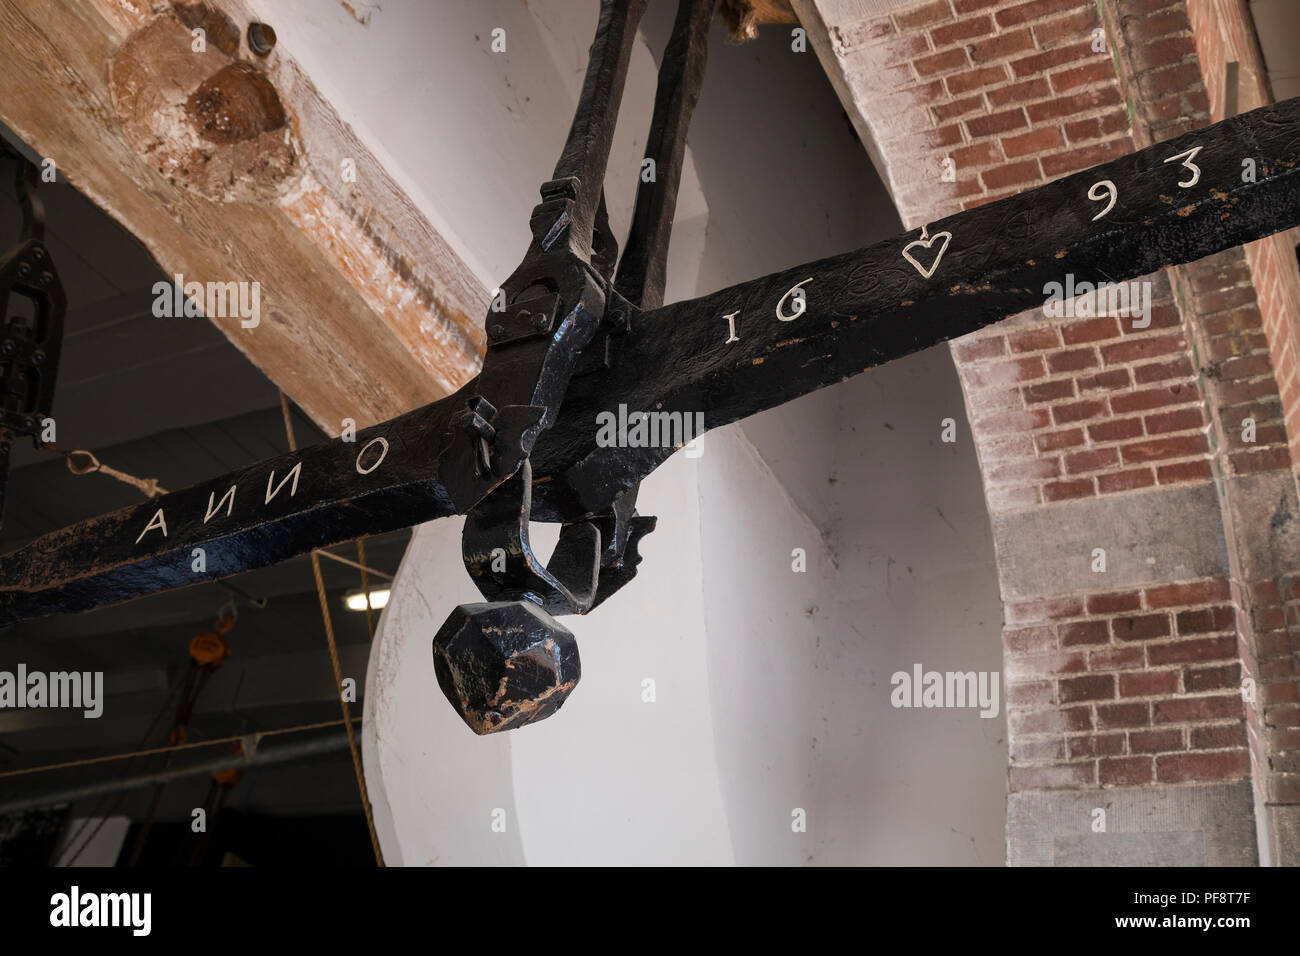 Alkmaar, Netherlands - July 20, 2018: Antique cheese scale in the Waag buiding on the cheese market in Alkmaar  dated 1693 - Stock Image